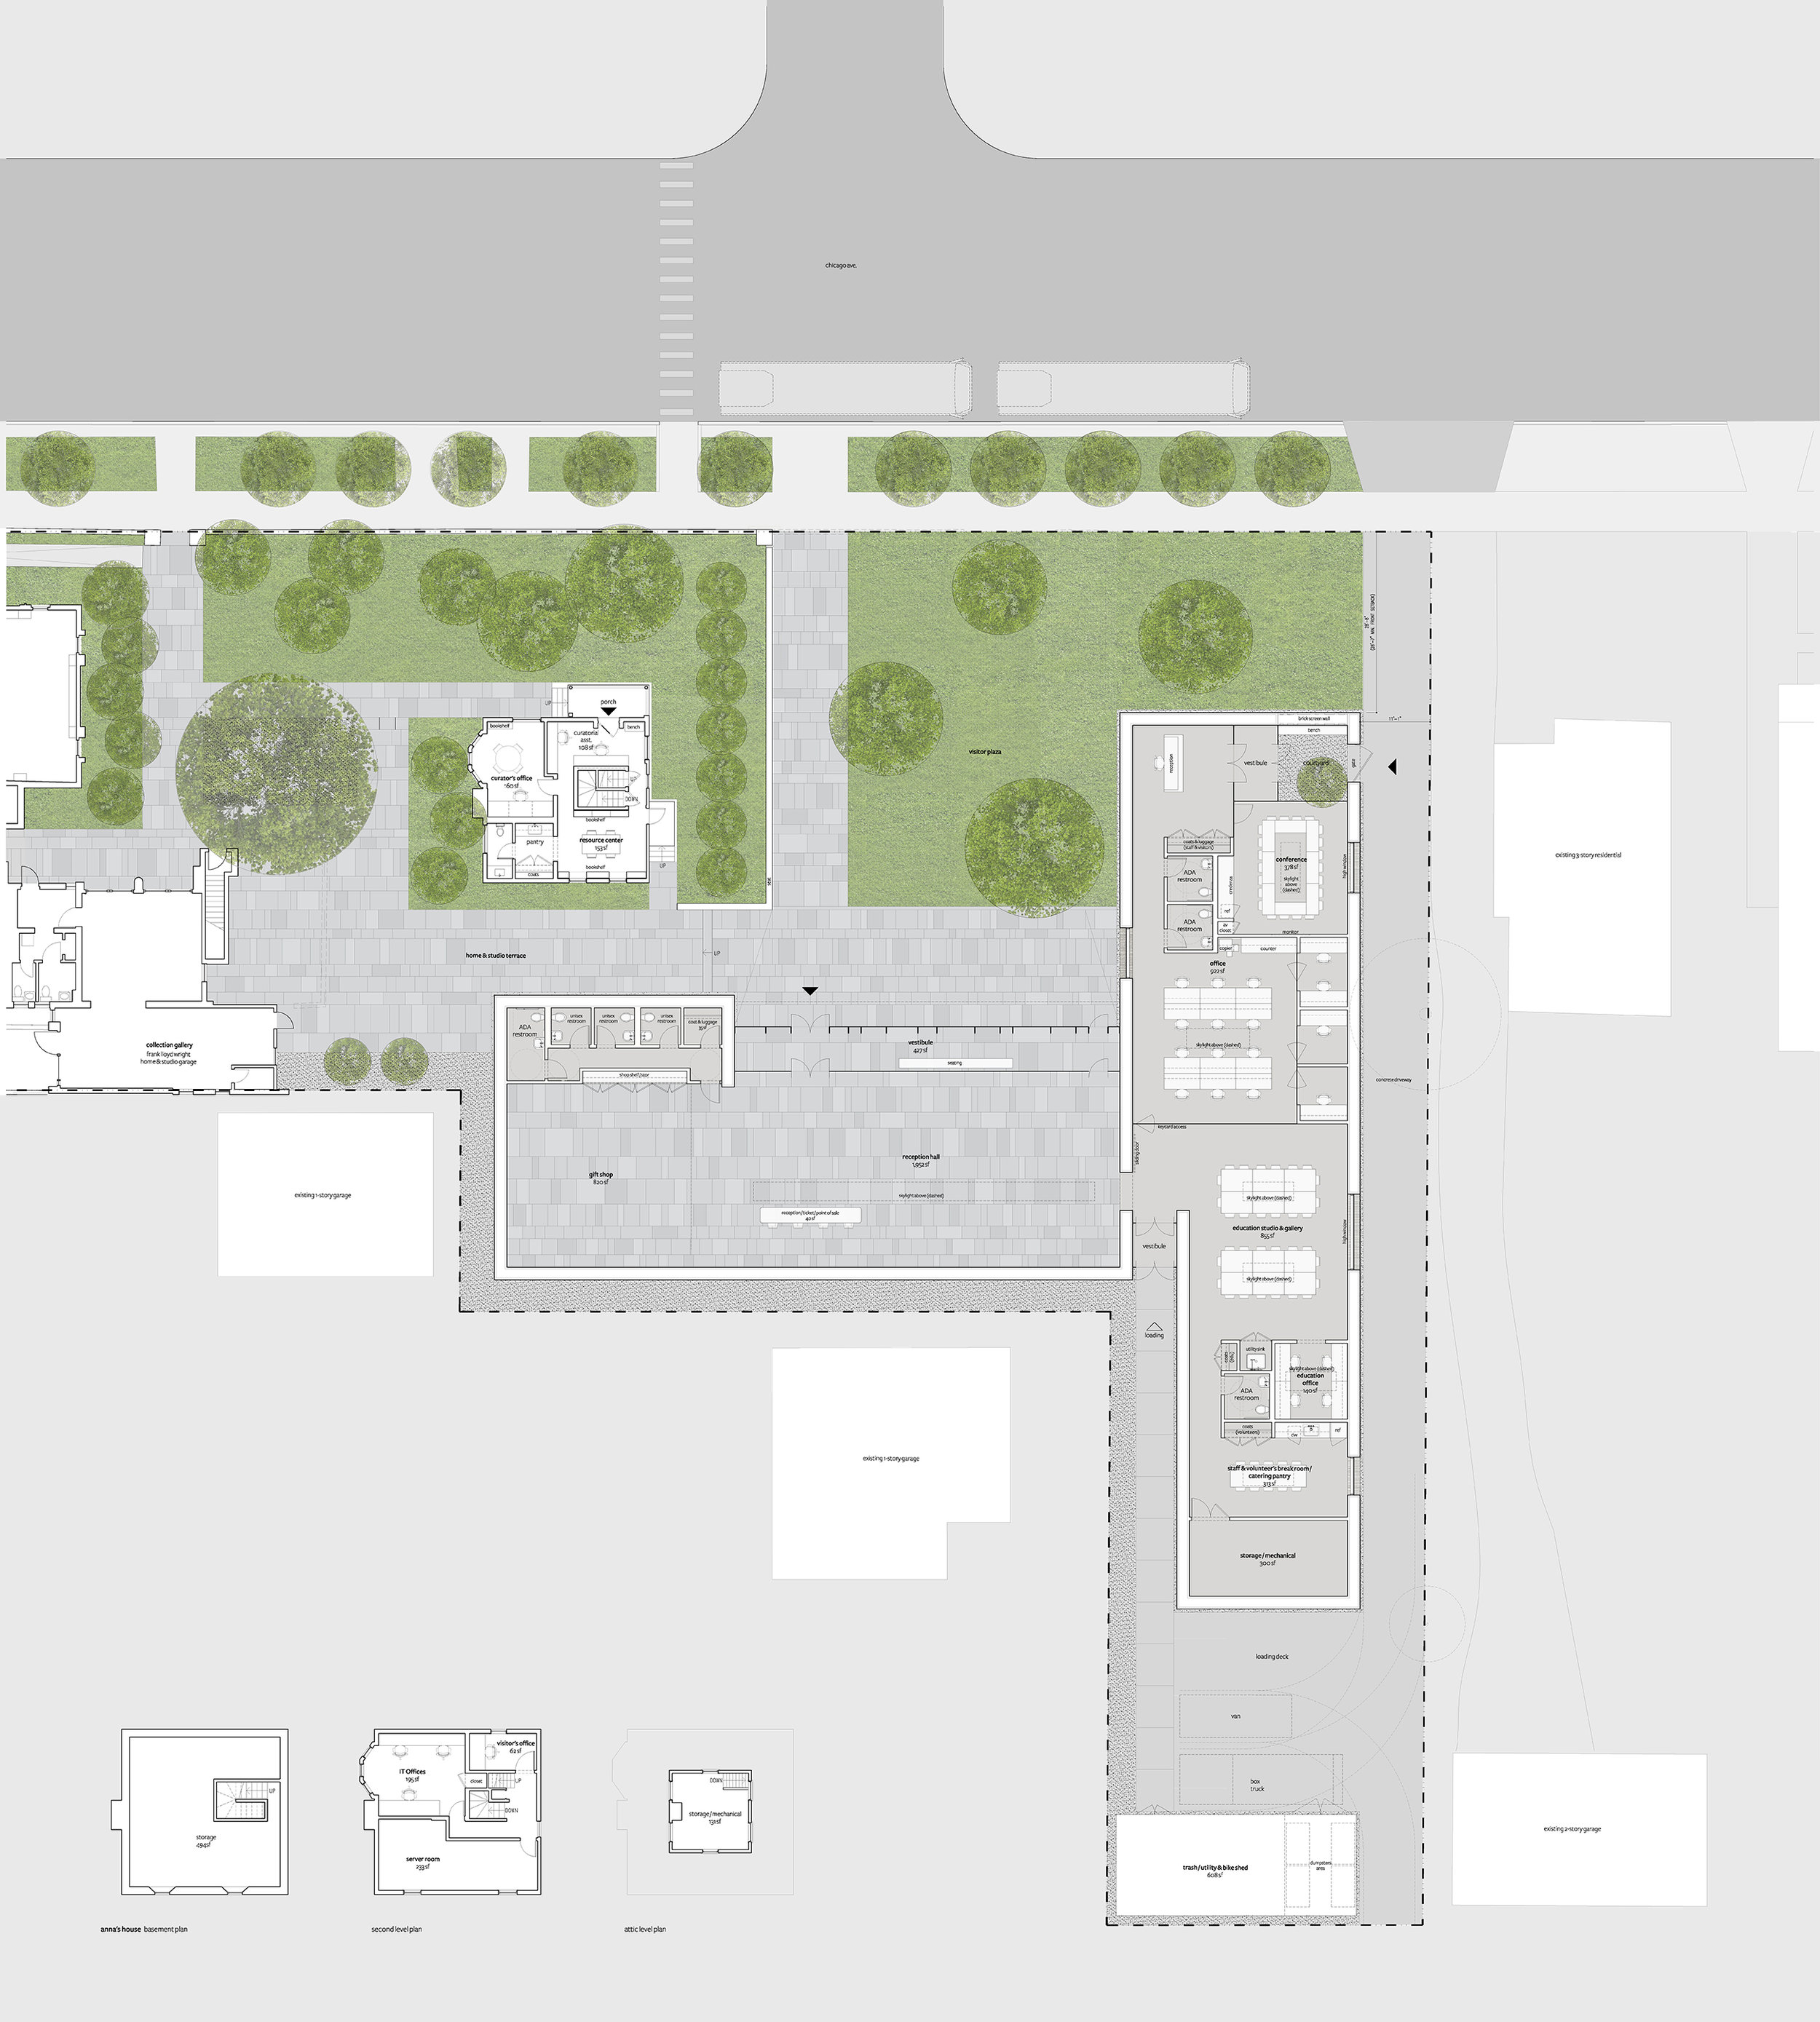 18_10.15---site-plan---colored-(cropped).jpg